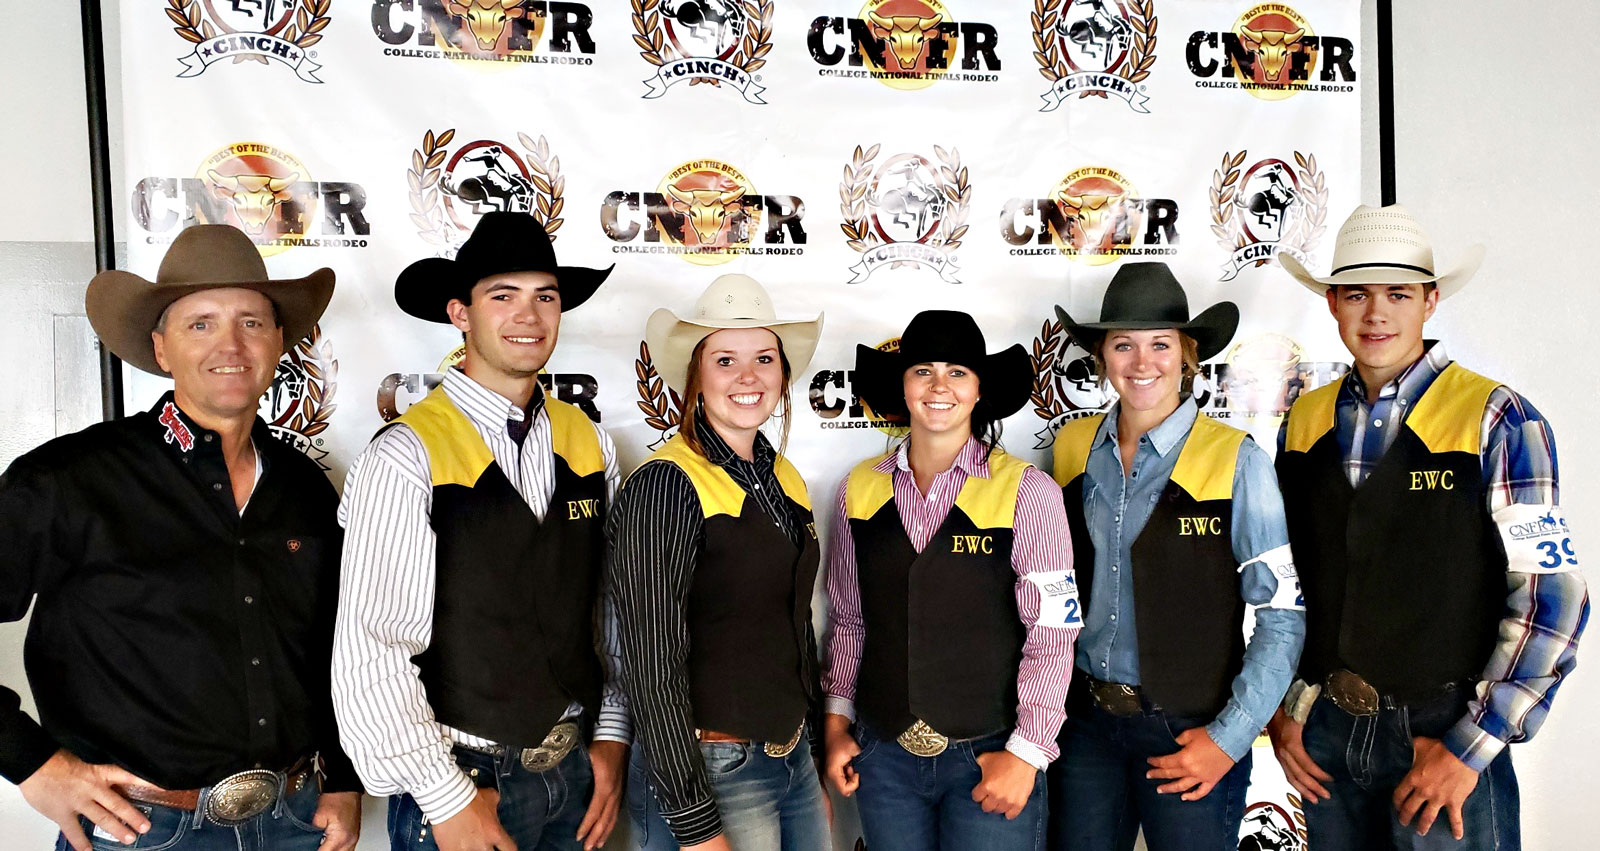 The Eastern Wyoming College Lancer rodeo students who qualified for the College National Finals Rodeo in Casper